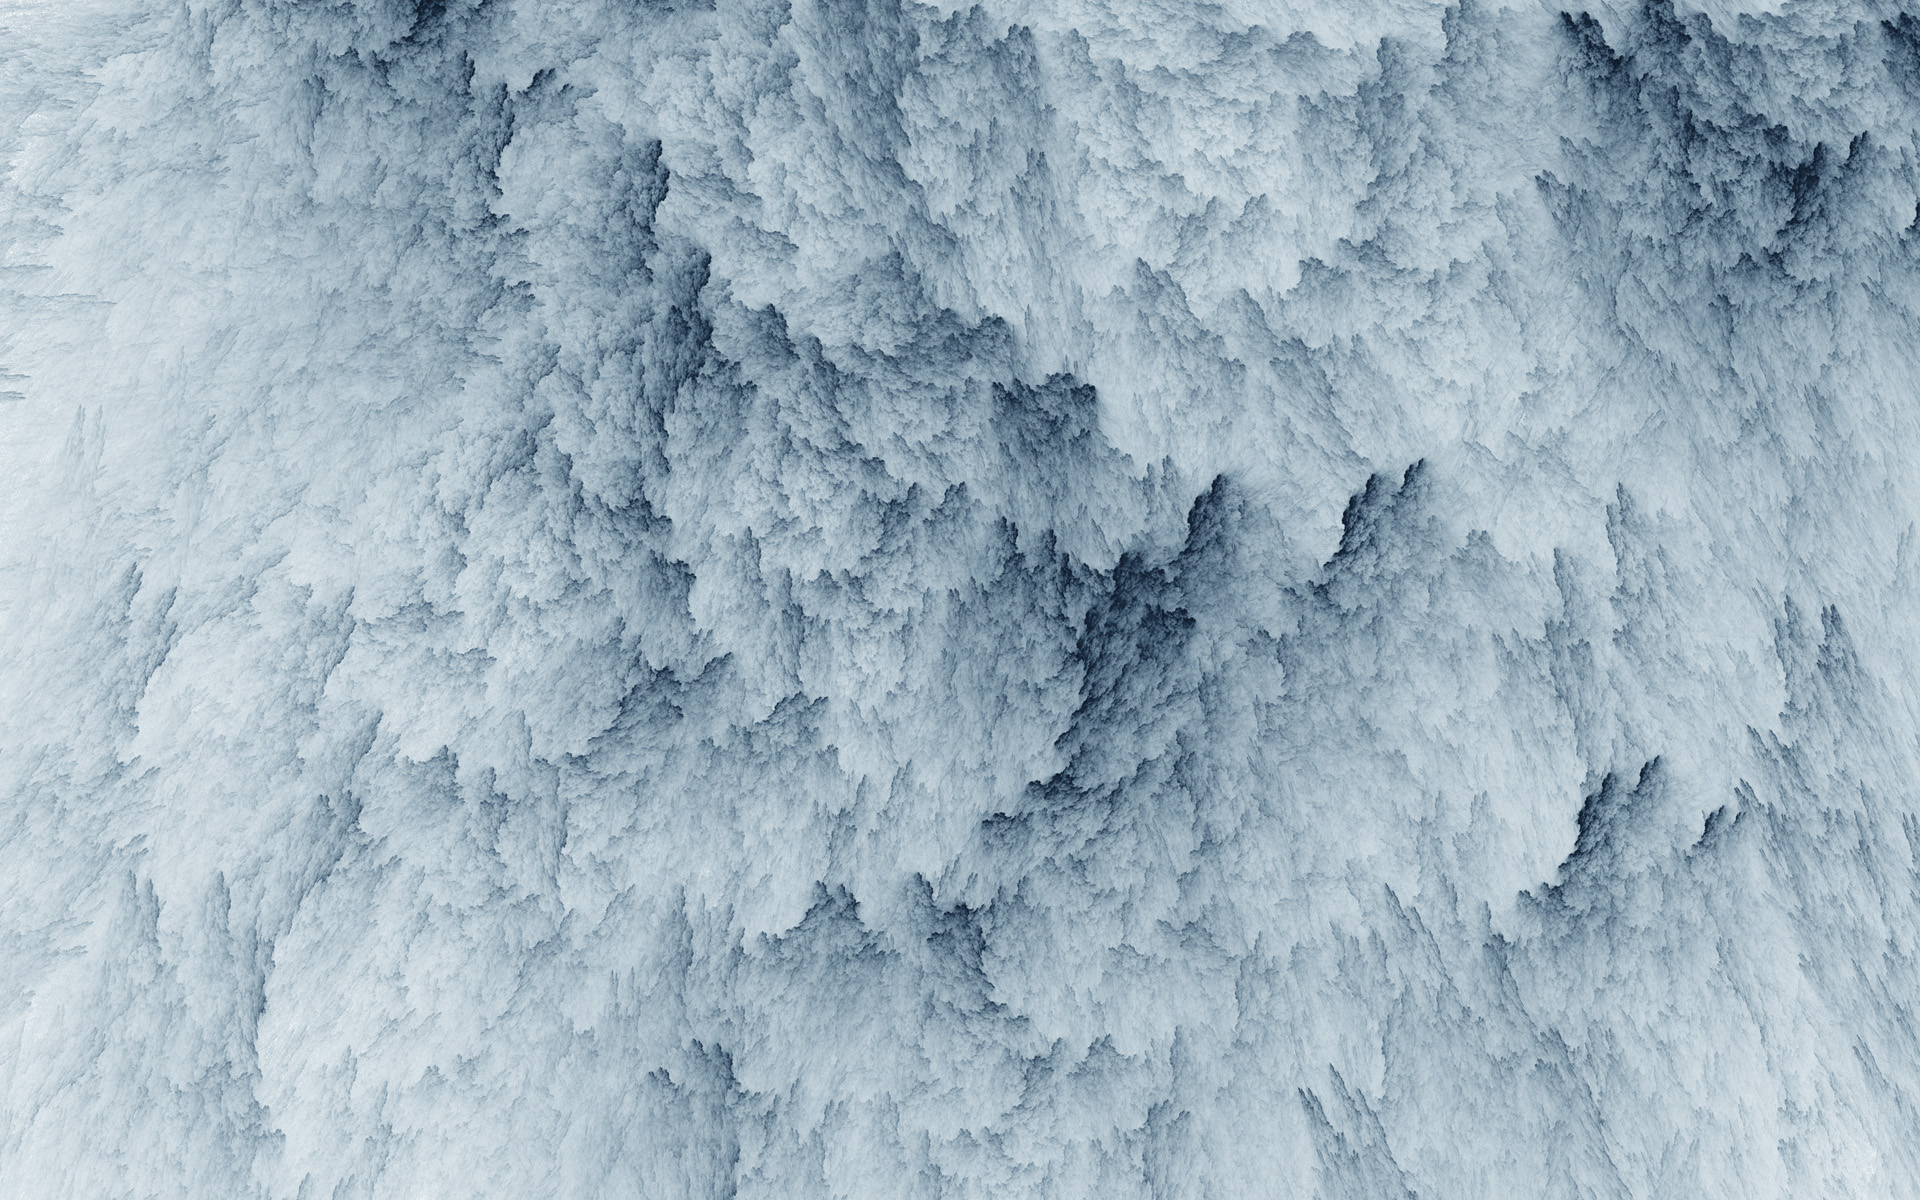 Avalanche Snow Texture wallpaper